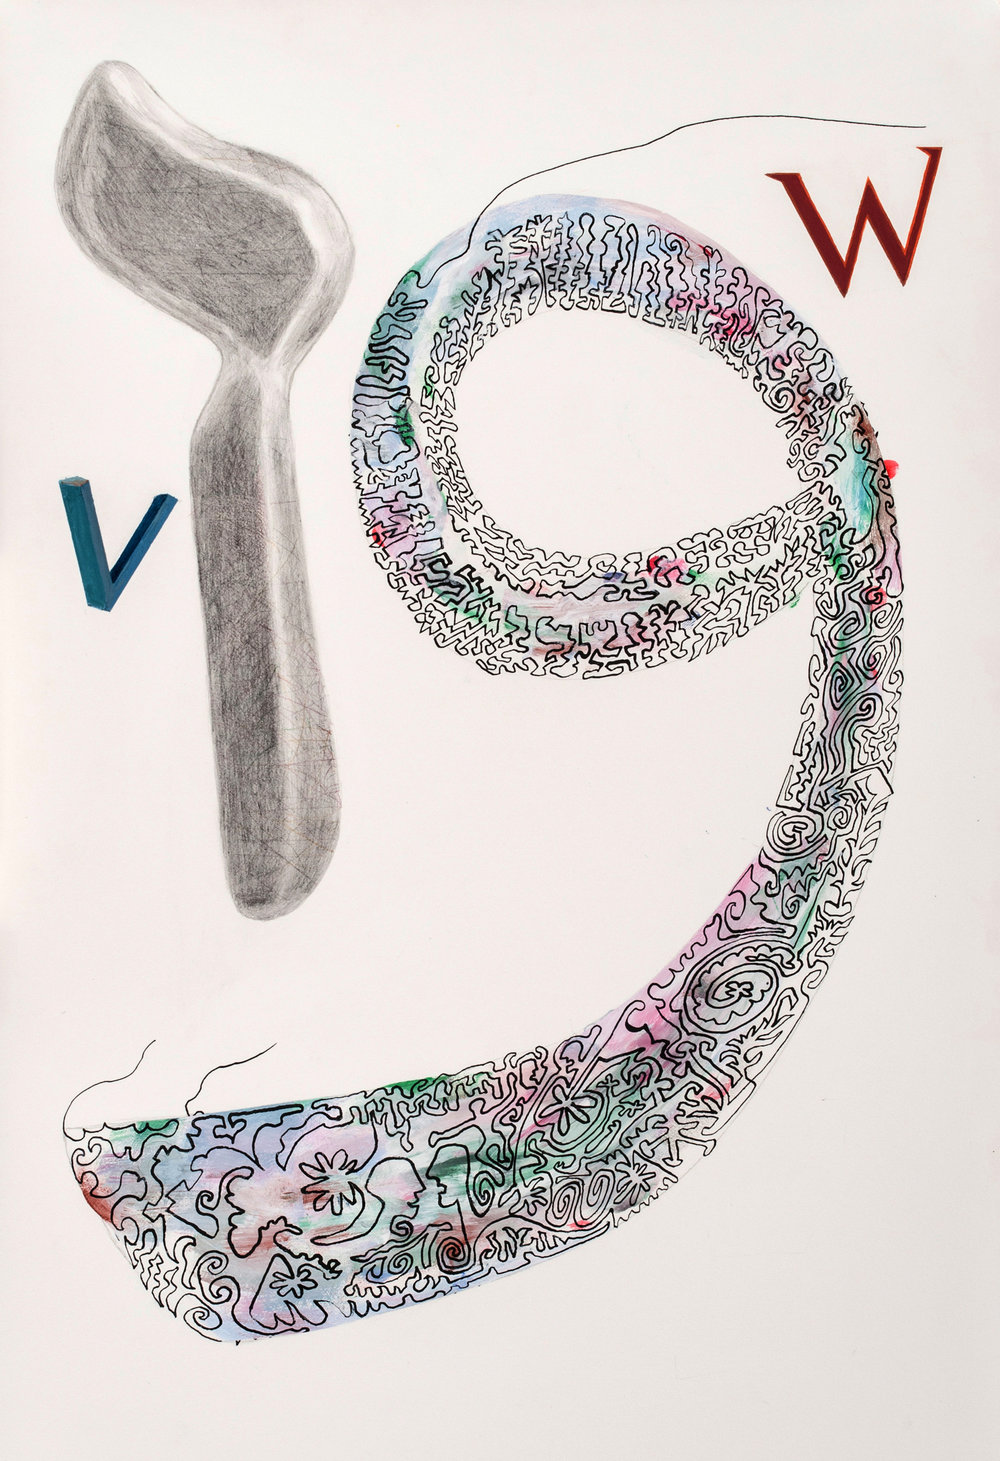 Joel Moskowitz,  Arabic  Waaw  and Hebrew  Vav , with W and V,  Mixed media on paper, 22x15